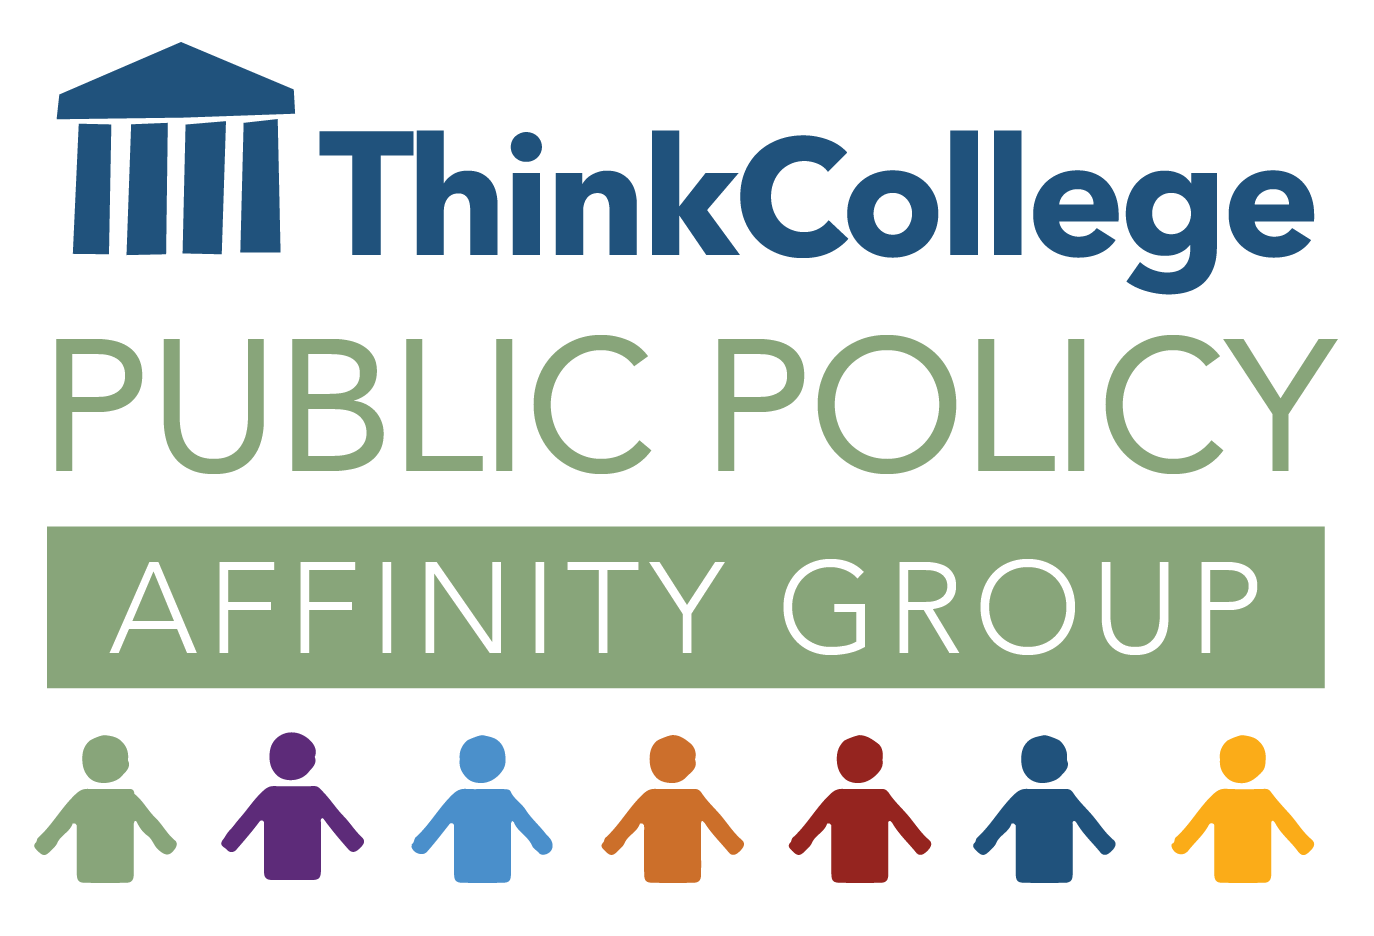 Public Policy Affinity Group Logo